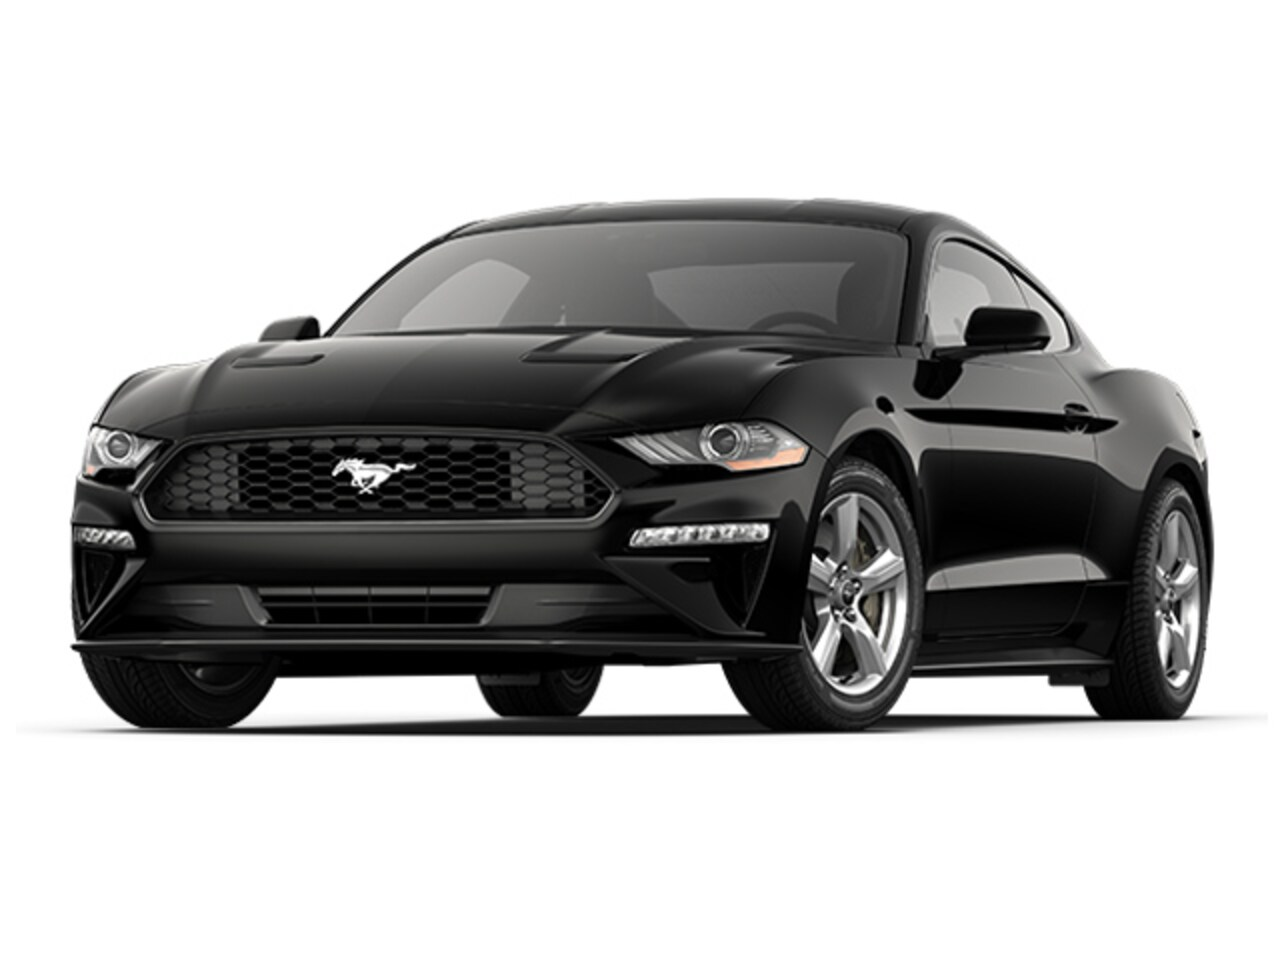 2018 Ford Mustang 100A 10 SPEED AUTOMATIC ECOBOOST PERFORMANCE PKG Coupe